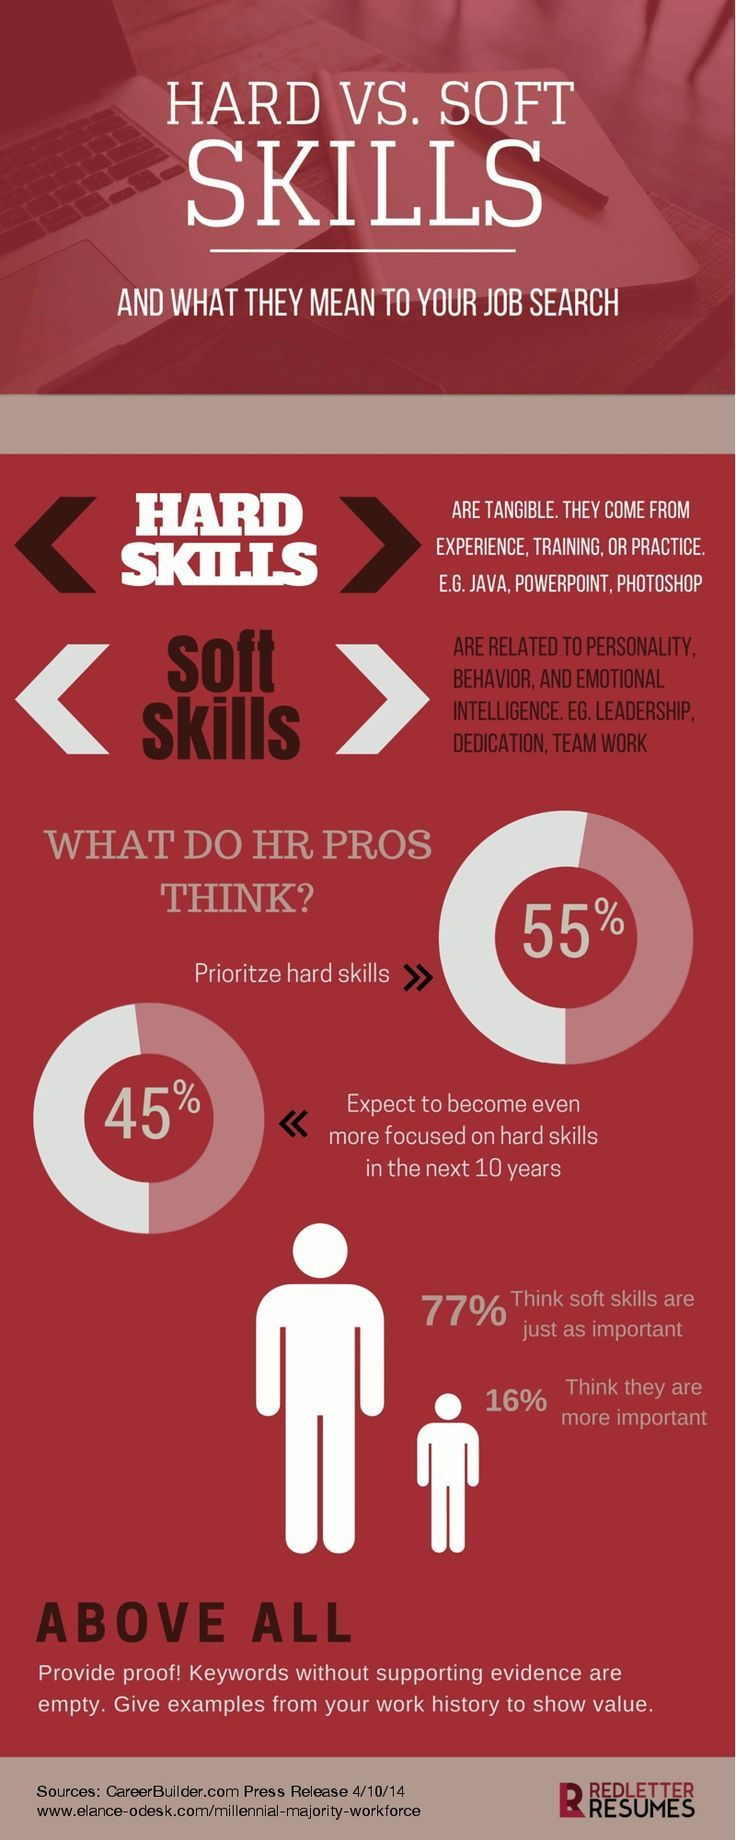 Hard Skills vs. Soft Skills What They Mean to Your Job